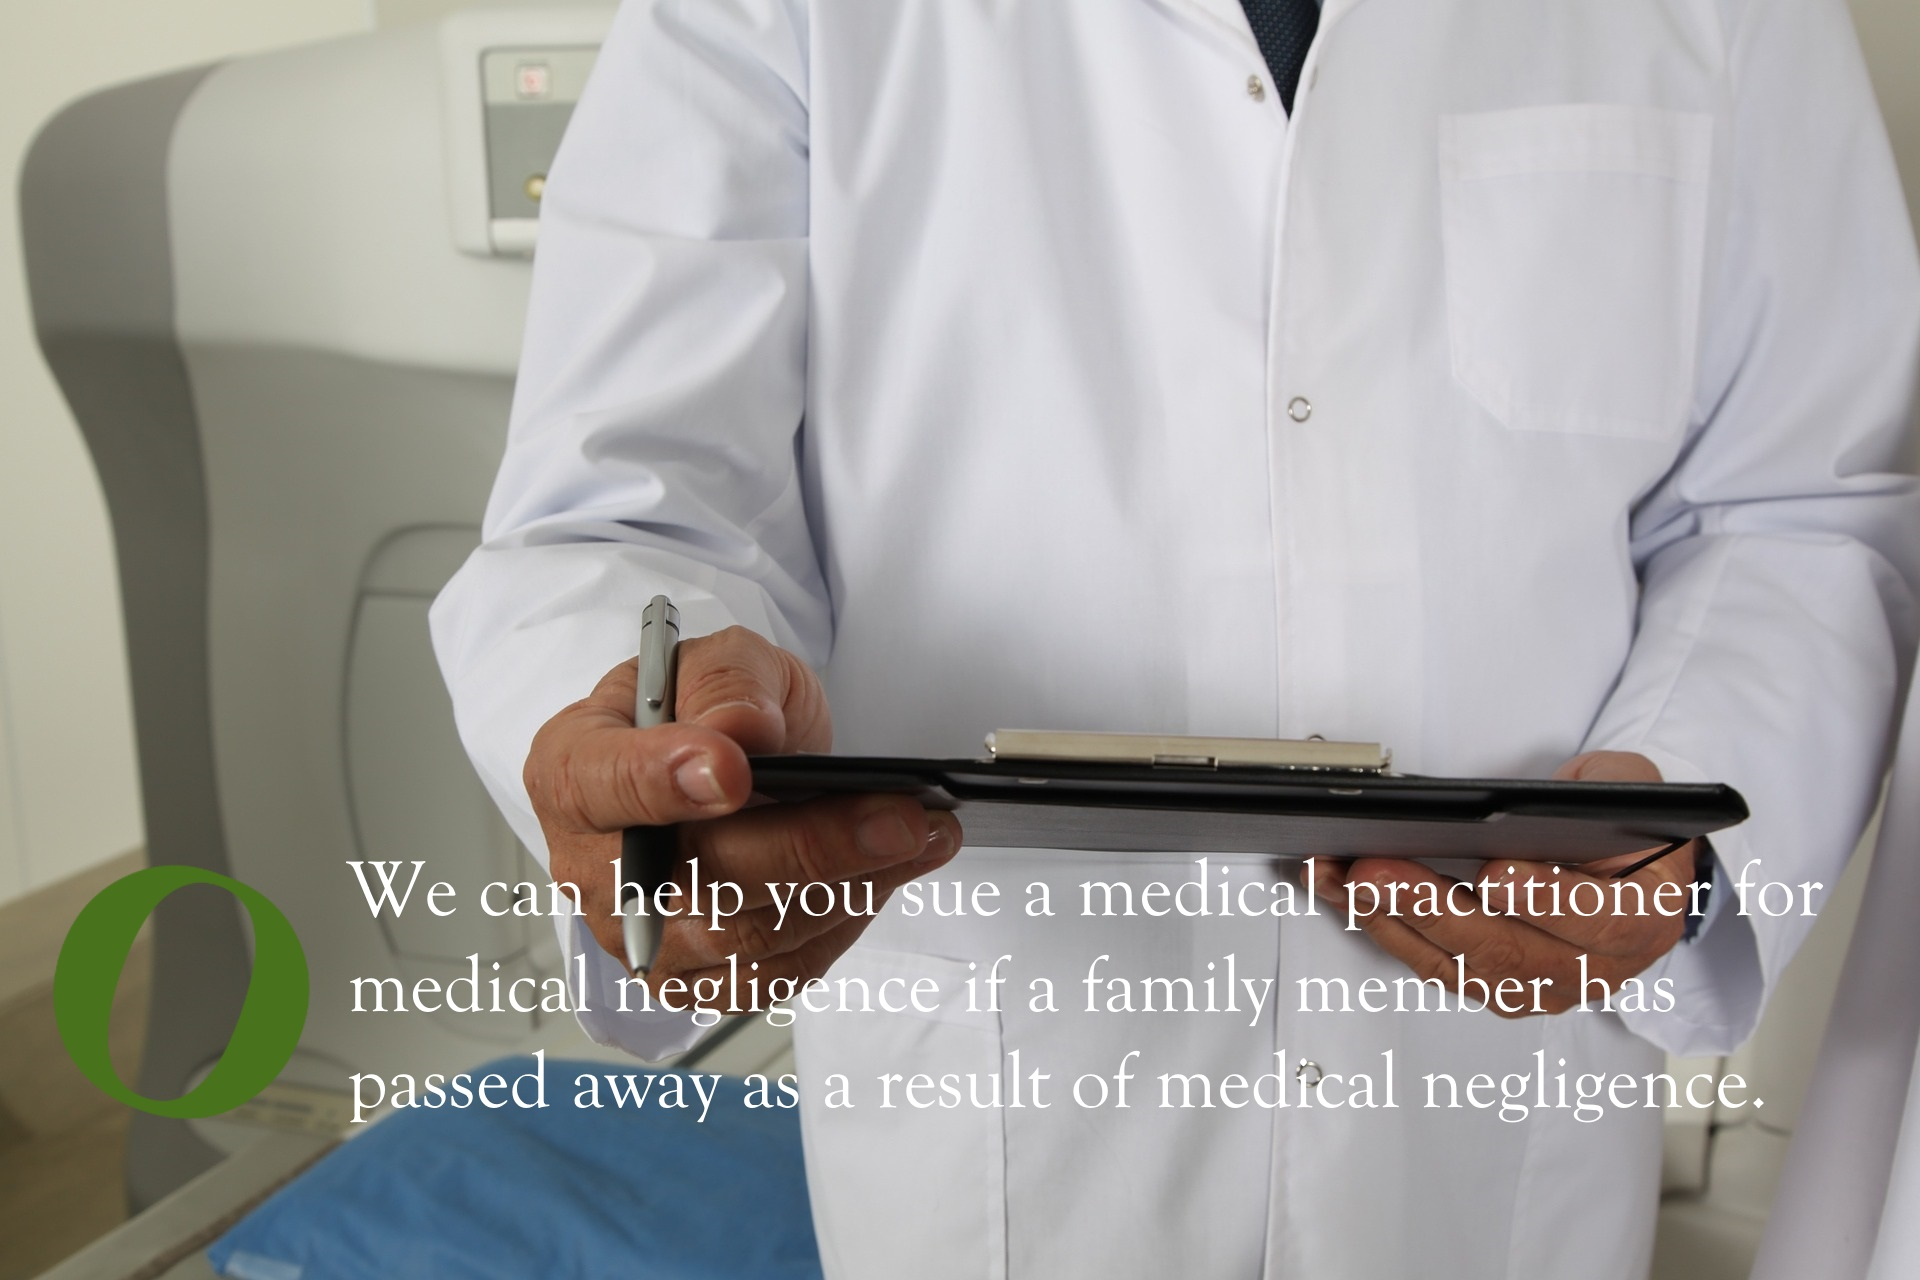 We can help you sue a medical practitioner for medical negligence if a family member has passed away as a result of medical negligence.